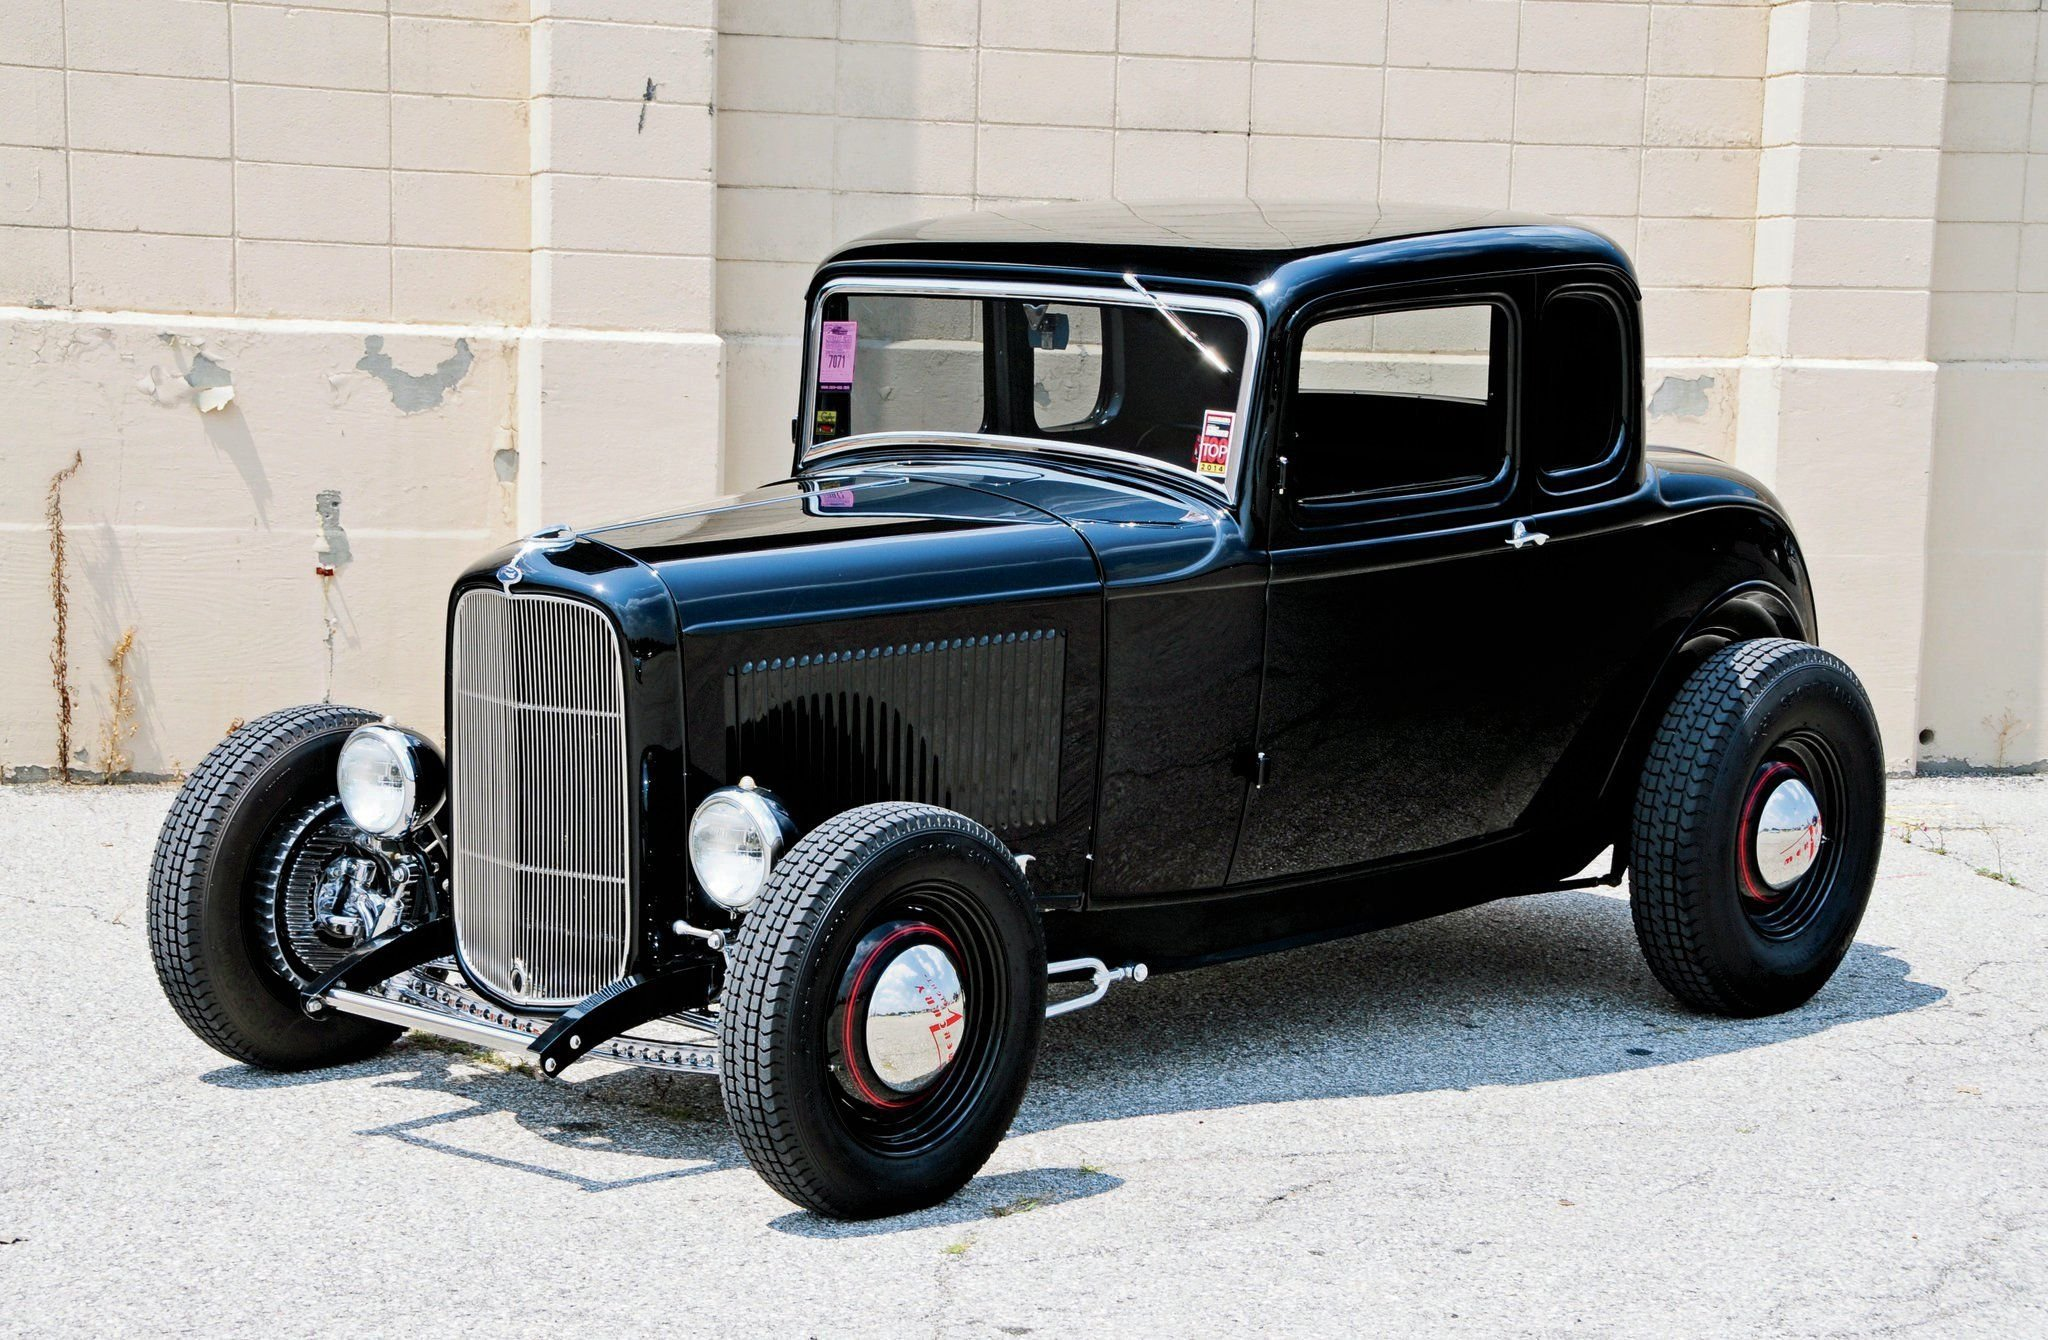 1932 Ford Coupe-03 wallpaper